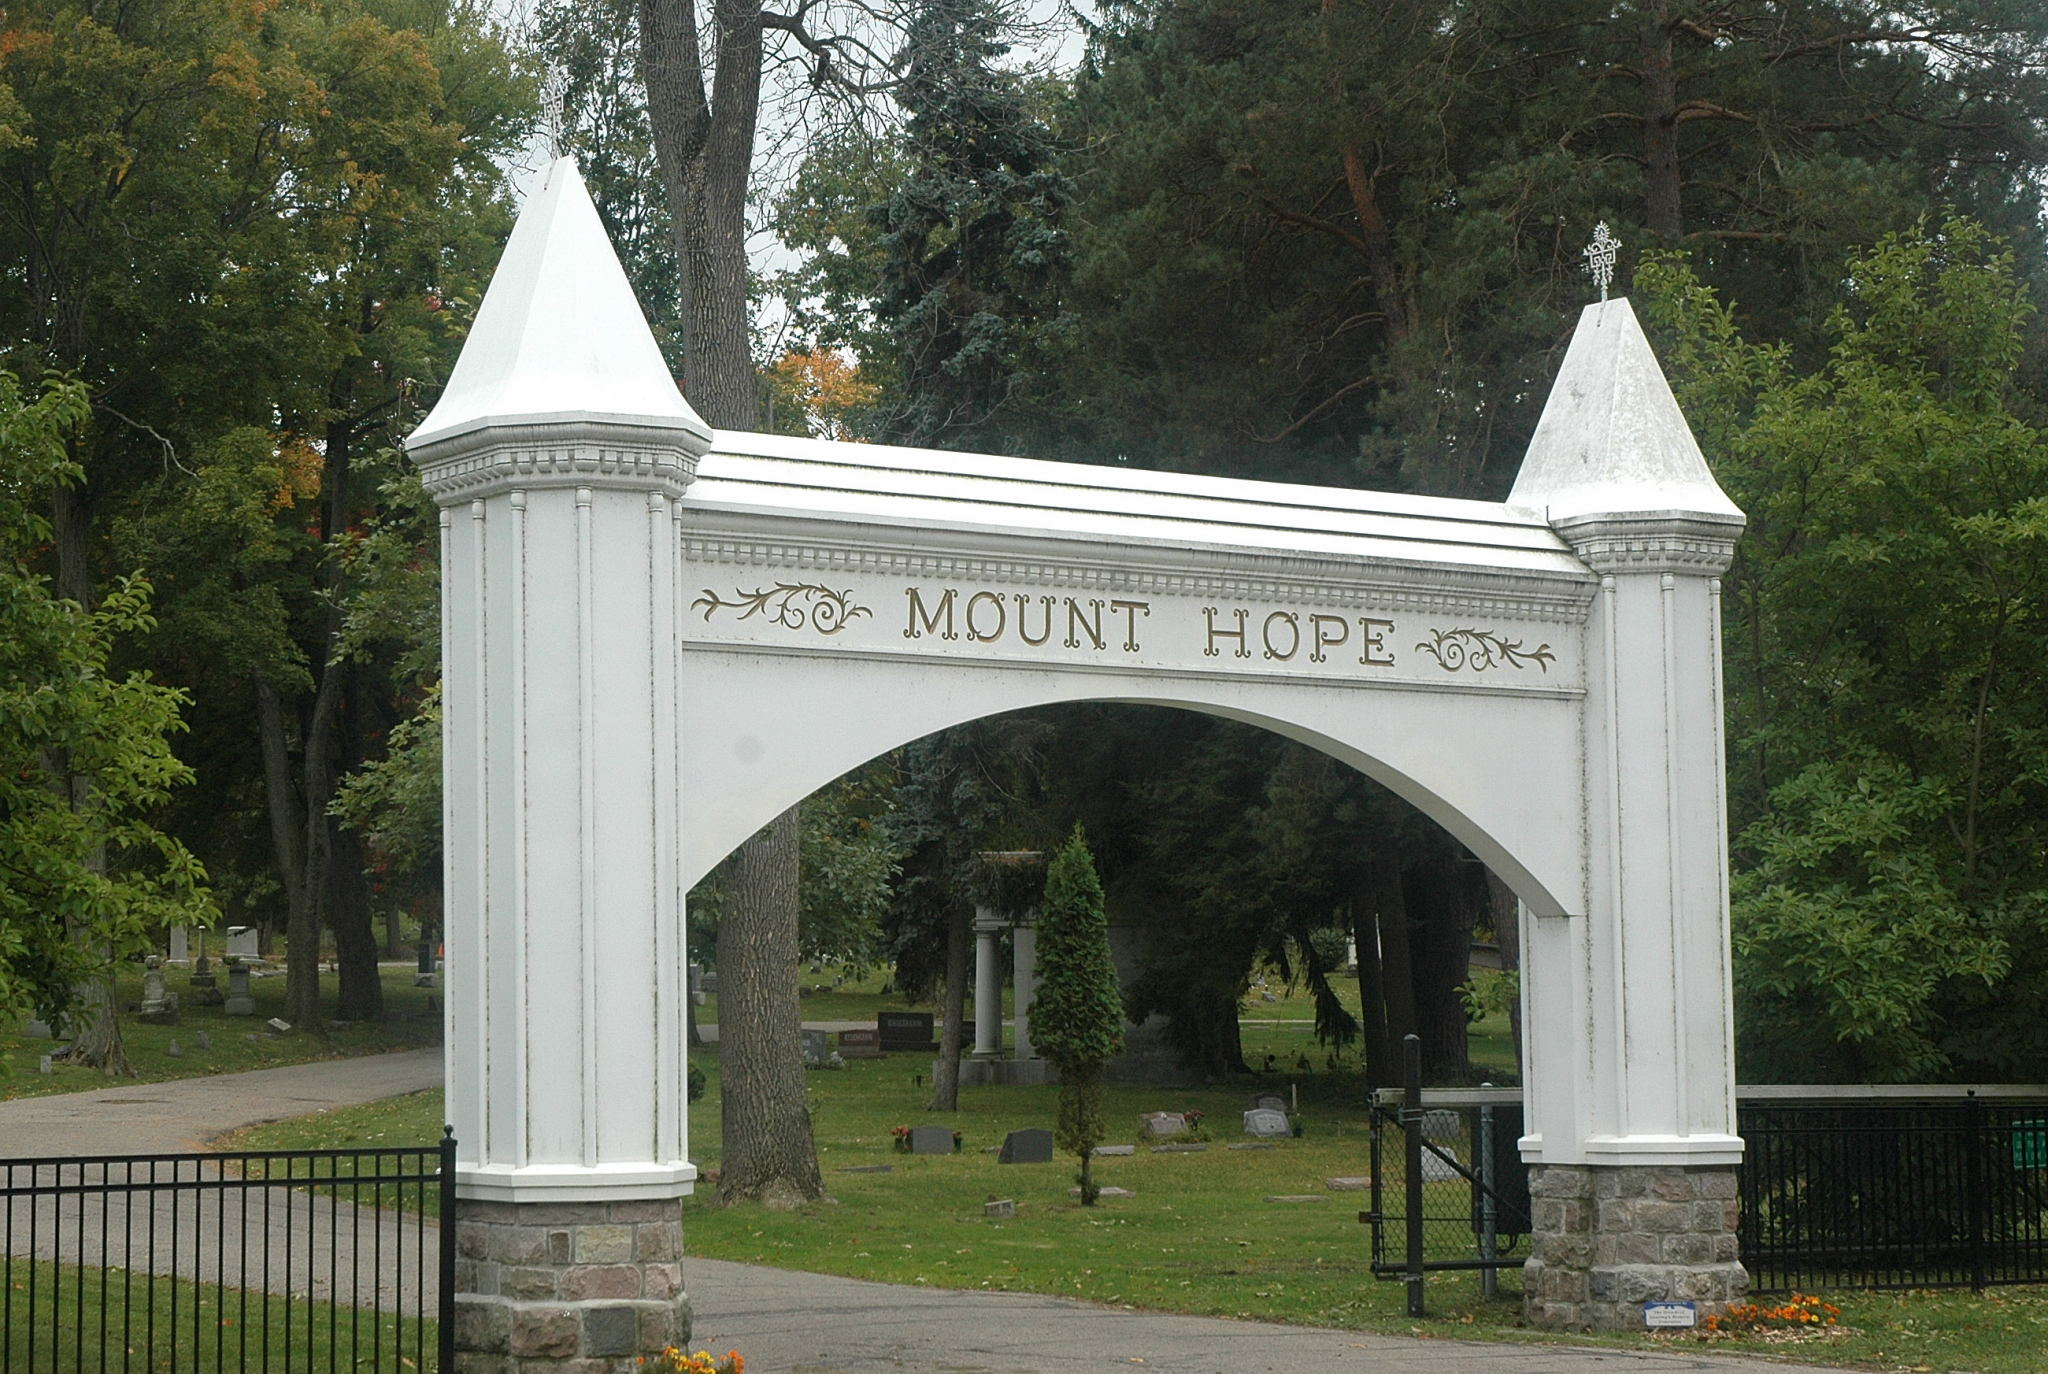 The entrance to Mount Hope Cemetary.